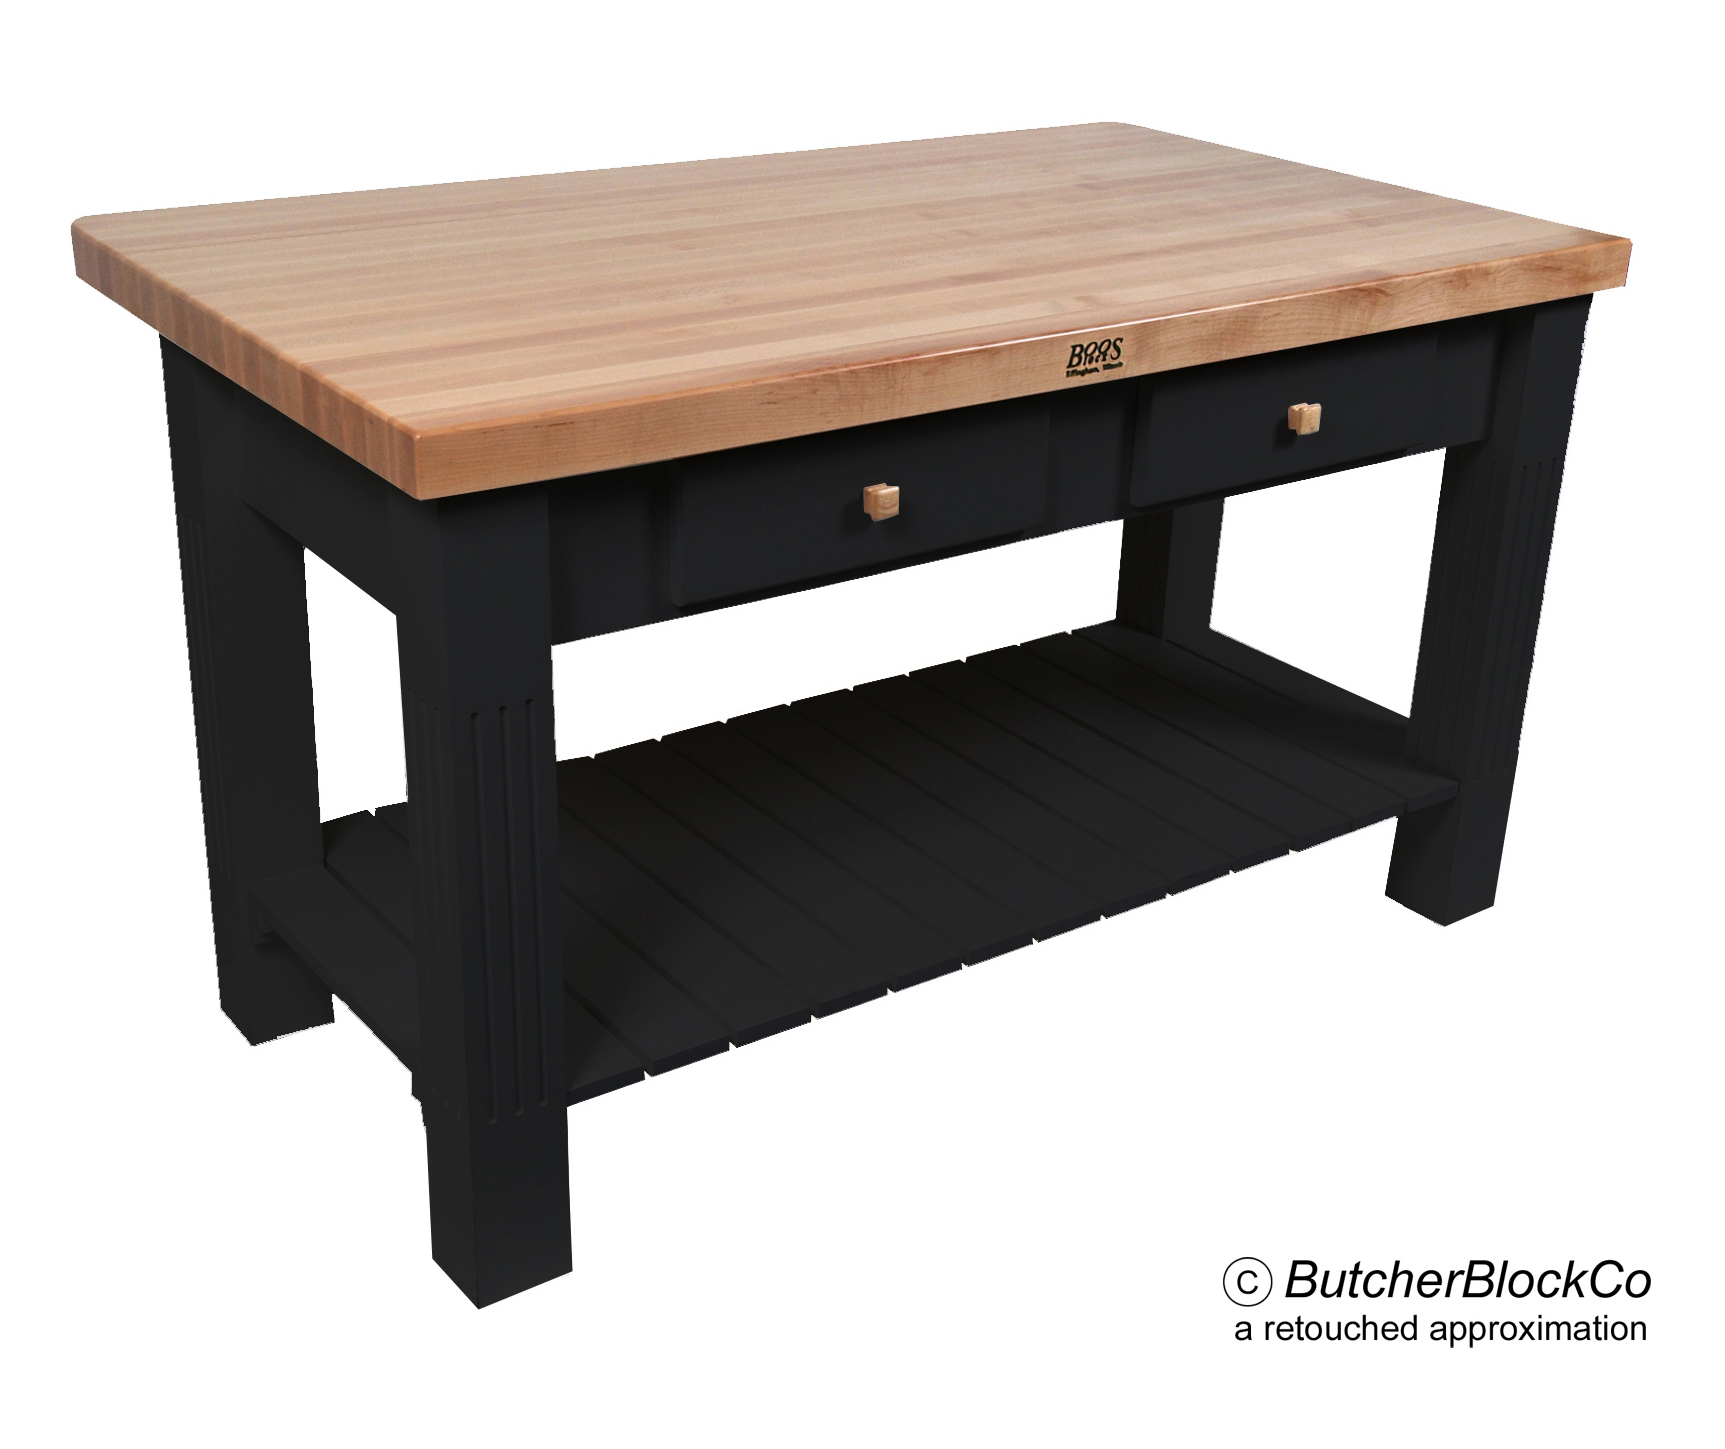 Maple Grazzi Butcher Block Table with Drop Leaf-Black